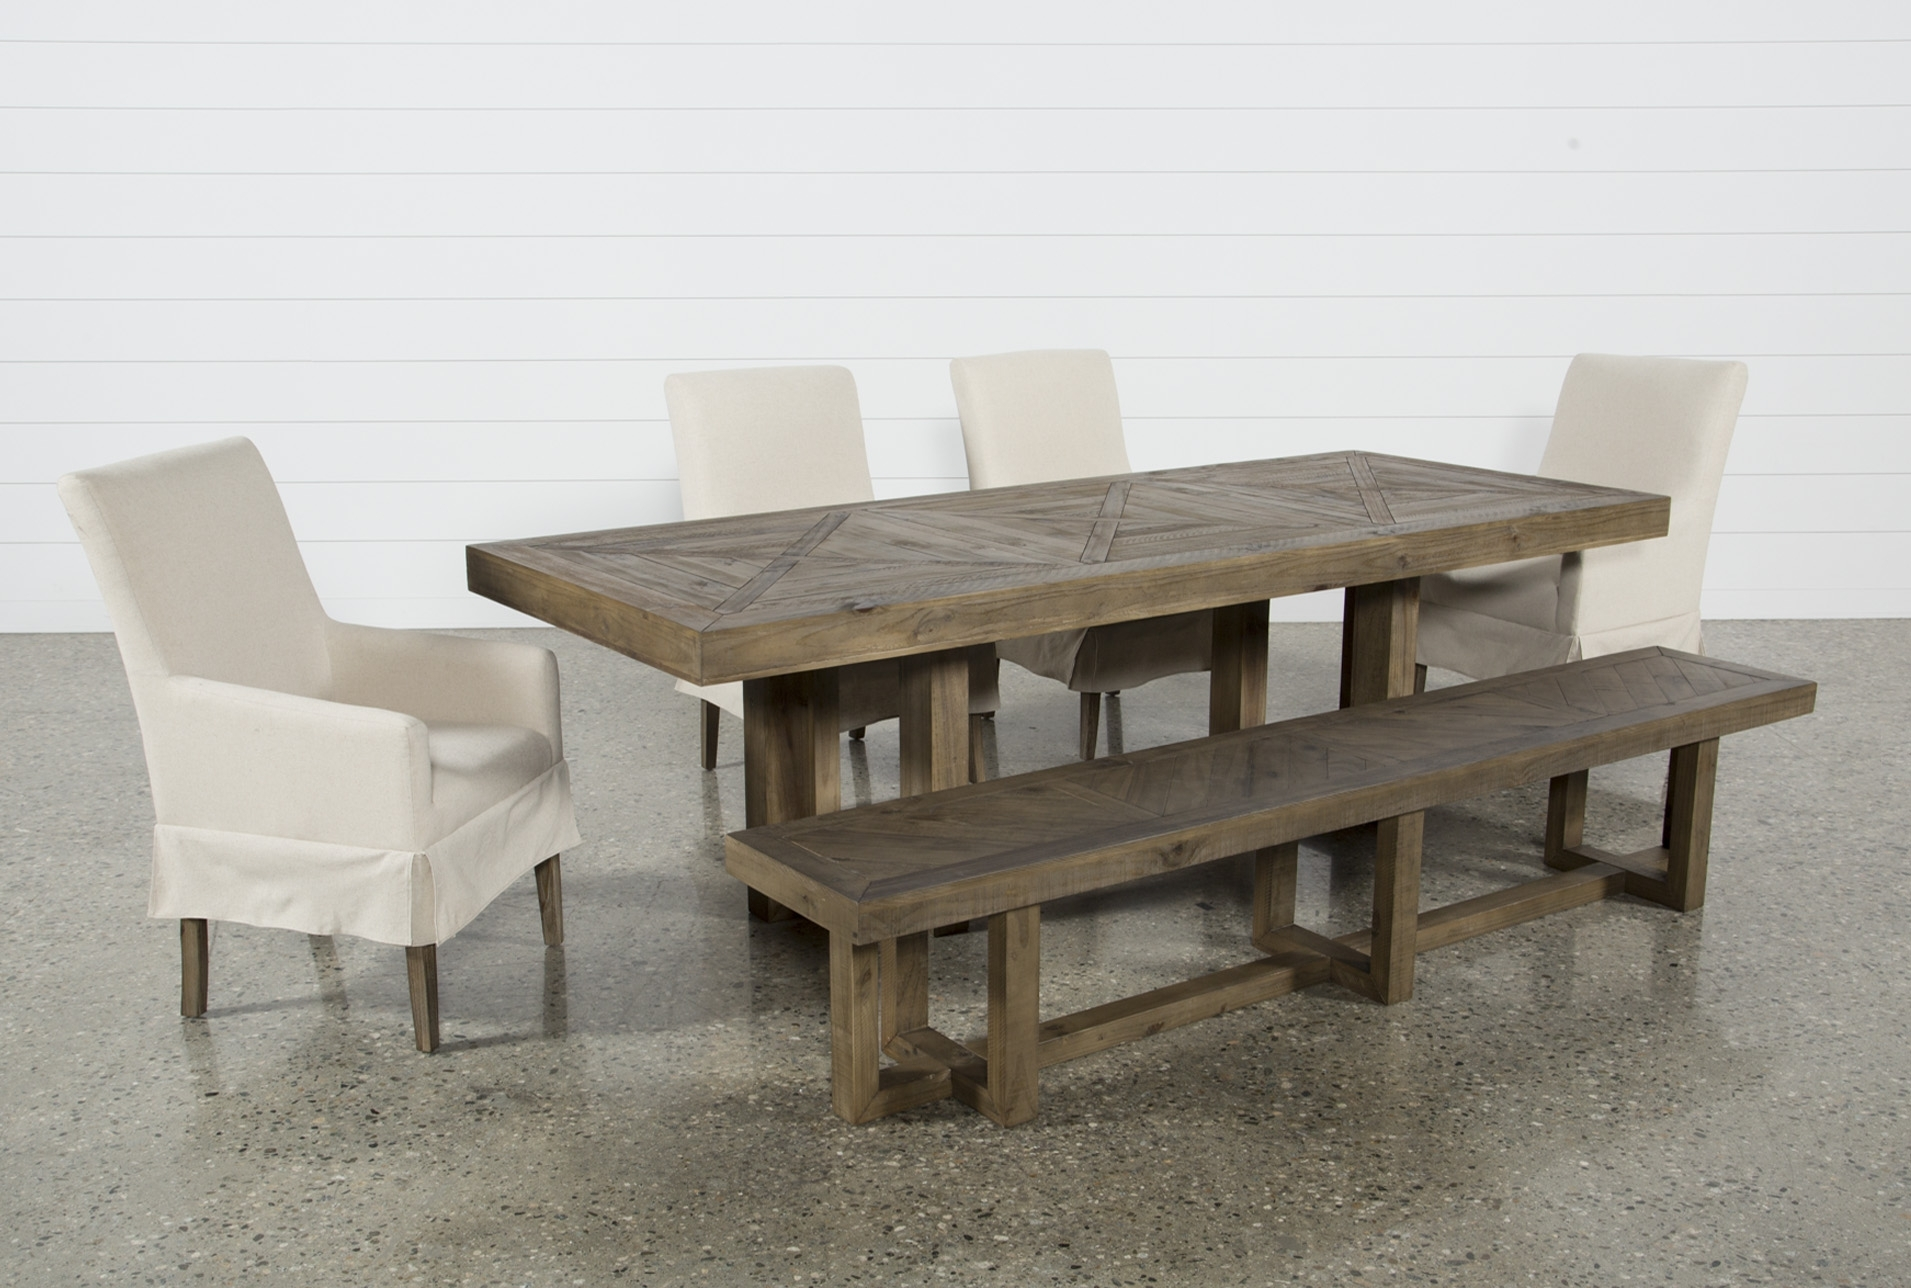 Safavieh Jovanna White/oak Acacia Wood 2 Seat Patio Bench Throughout Latest Palazzo 6 Piece Dining Set With Mindy Slipcovered Side Chairs (Image 20 of 20)